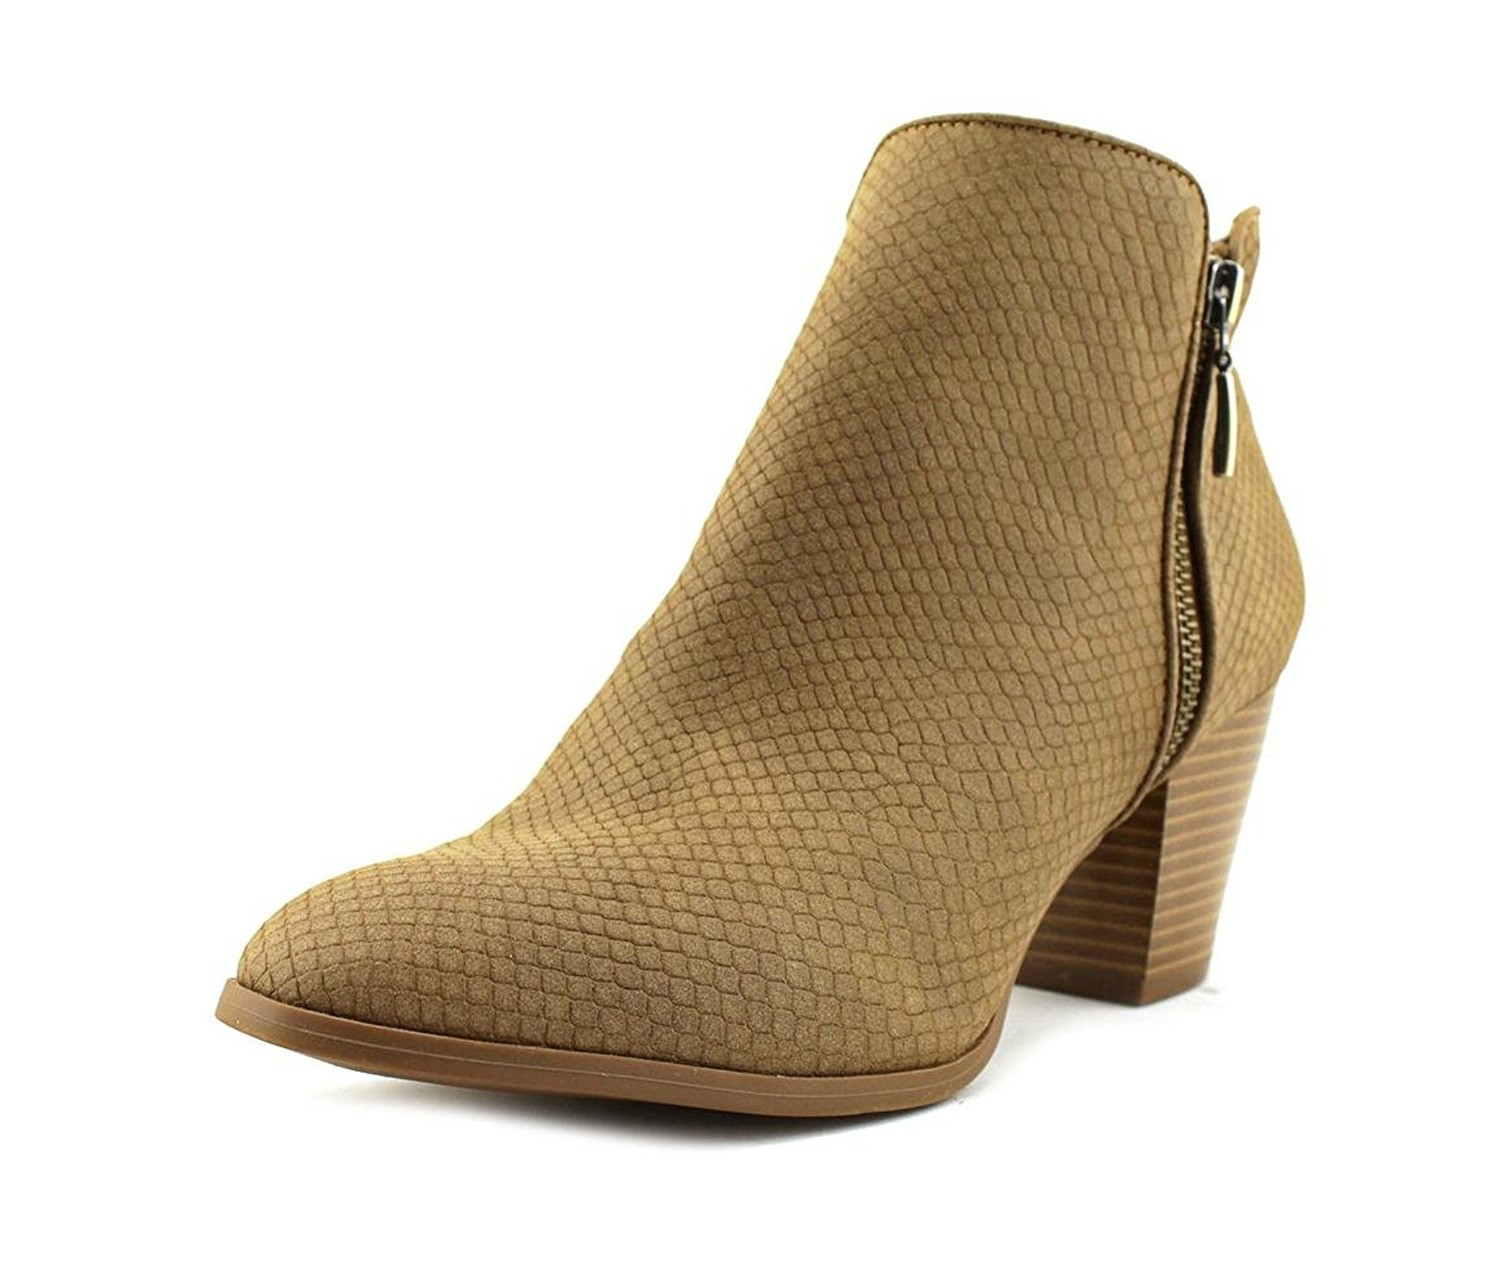 d7c71194ca6b Shop Style   Co Style   Co. JAMILA Leather Ankle Fashion Boots ...